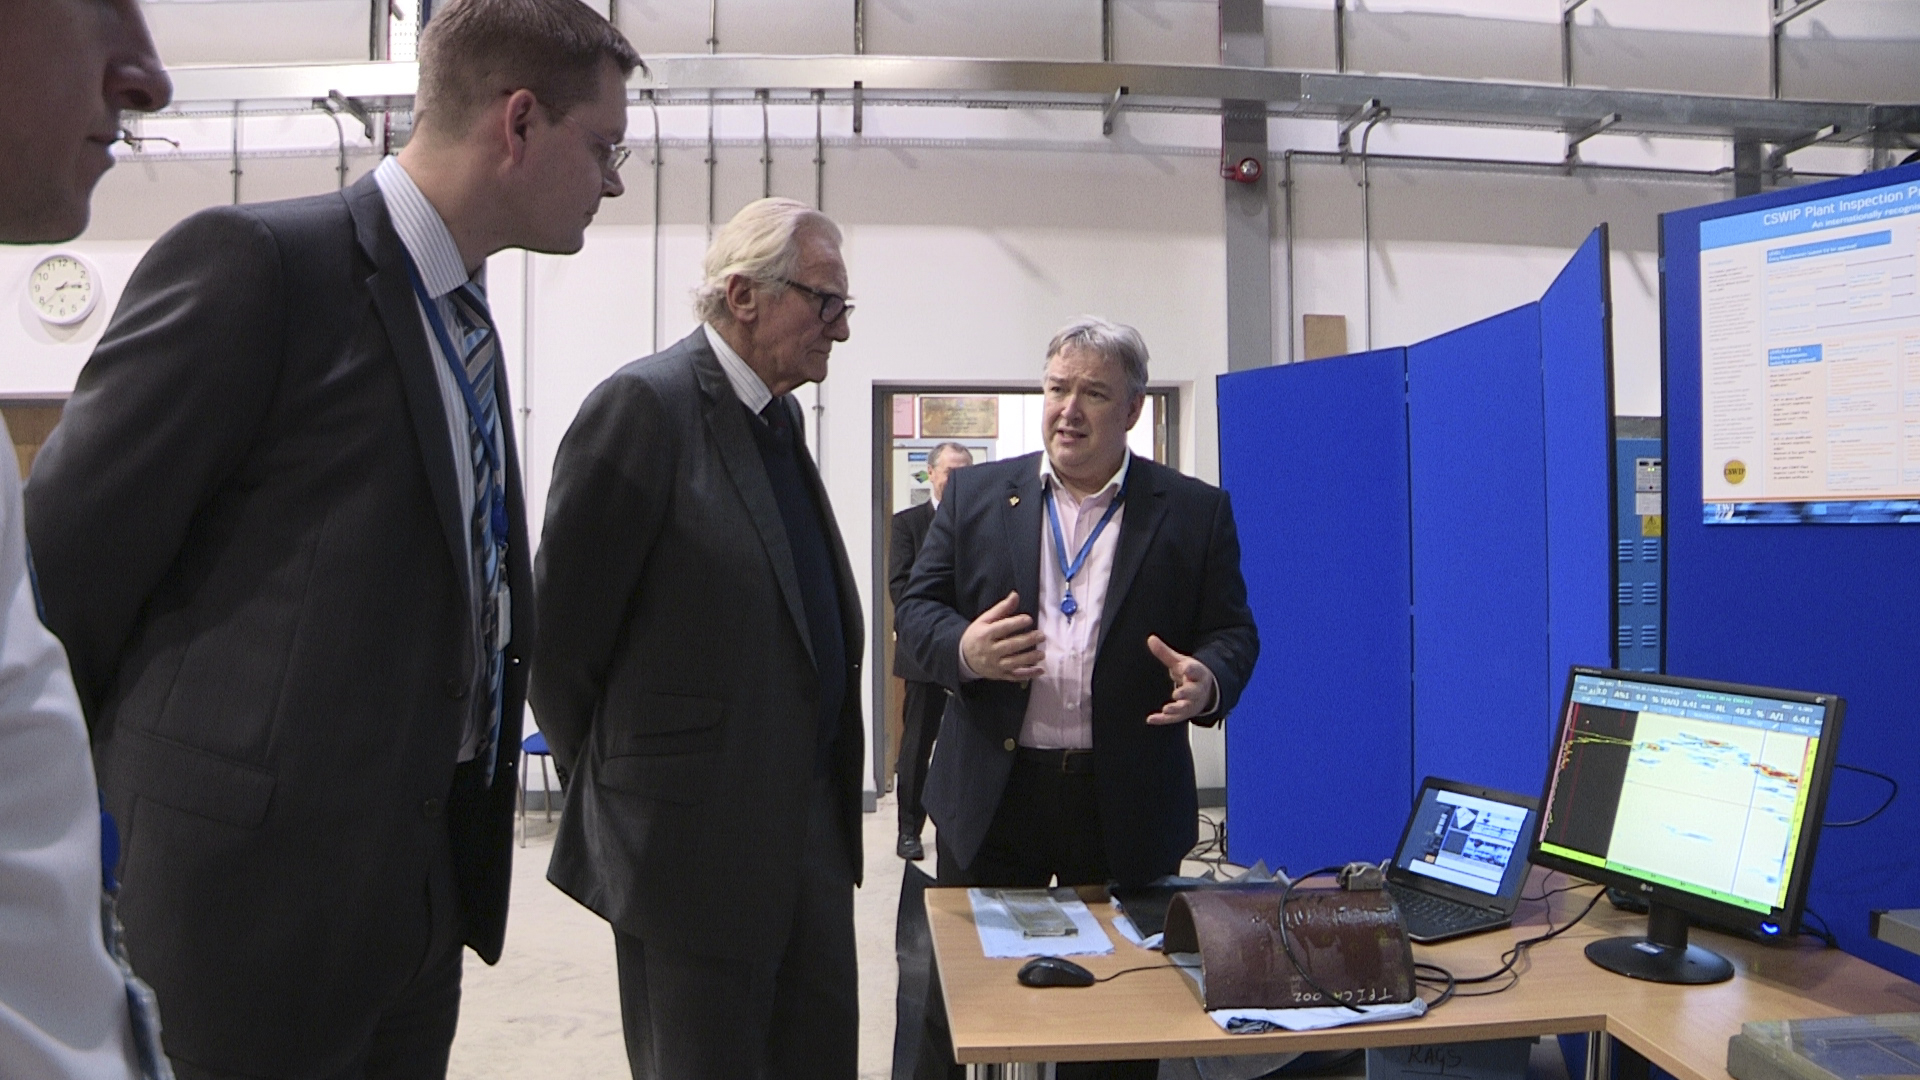 TWI's Neil Harrap discusses with Lord Heseltine non-destructive testing techniques used by inspection personnel to monitor the structural integrity of pipelines and large components